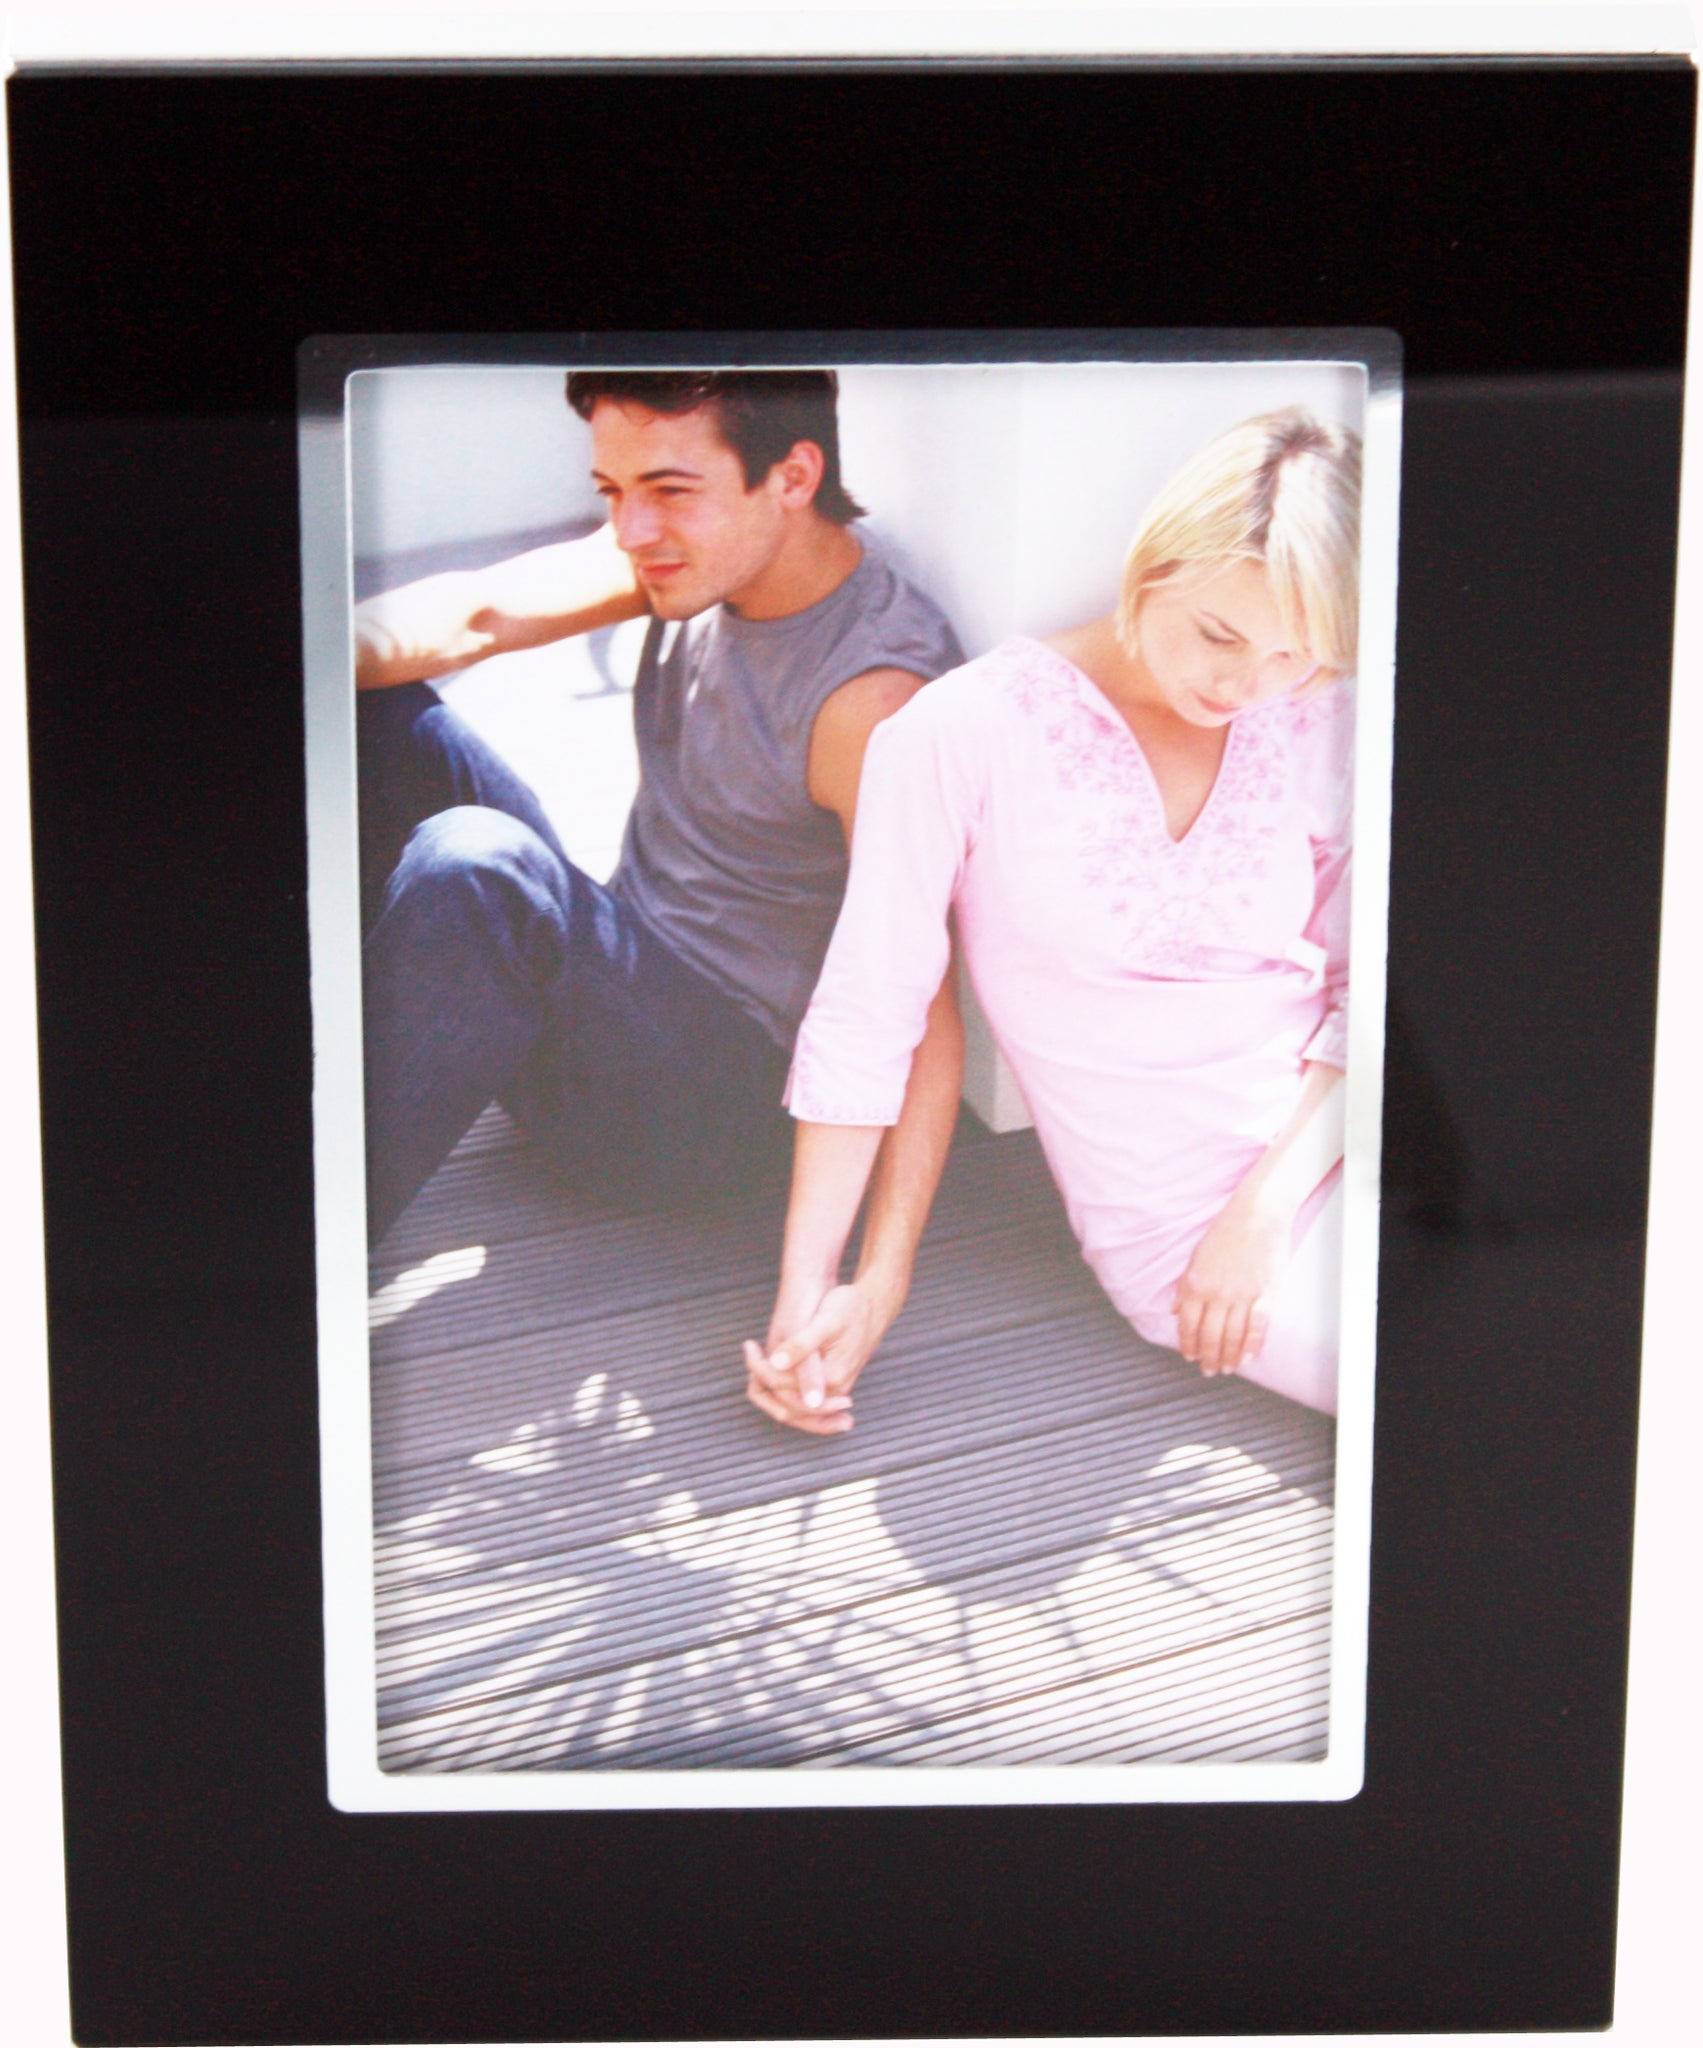 4x6 Black Aluminum and Glass Photo Frame